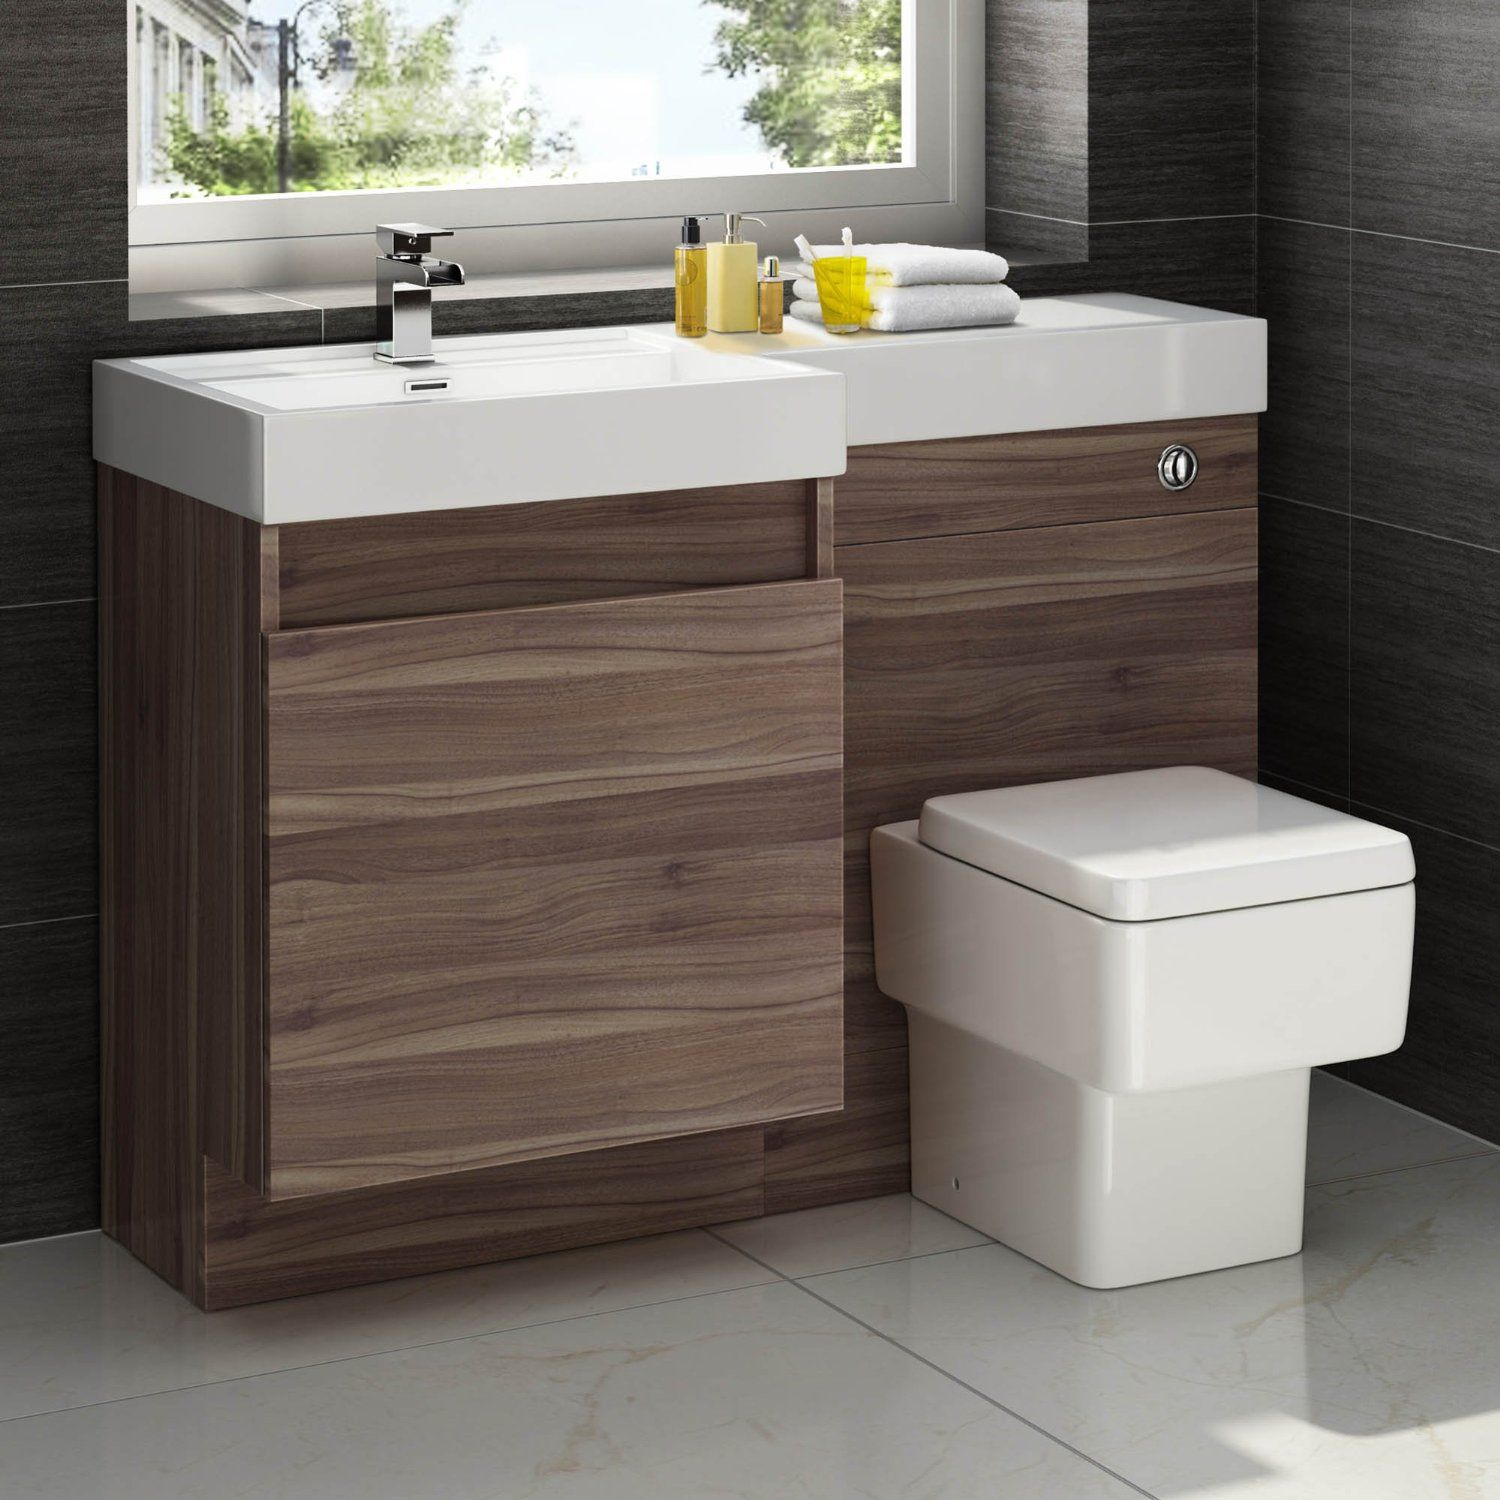 1200mm Walnut Vanity Unit Square Toilet Bathroom Sink Left Hand